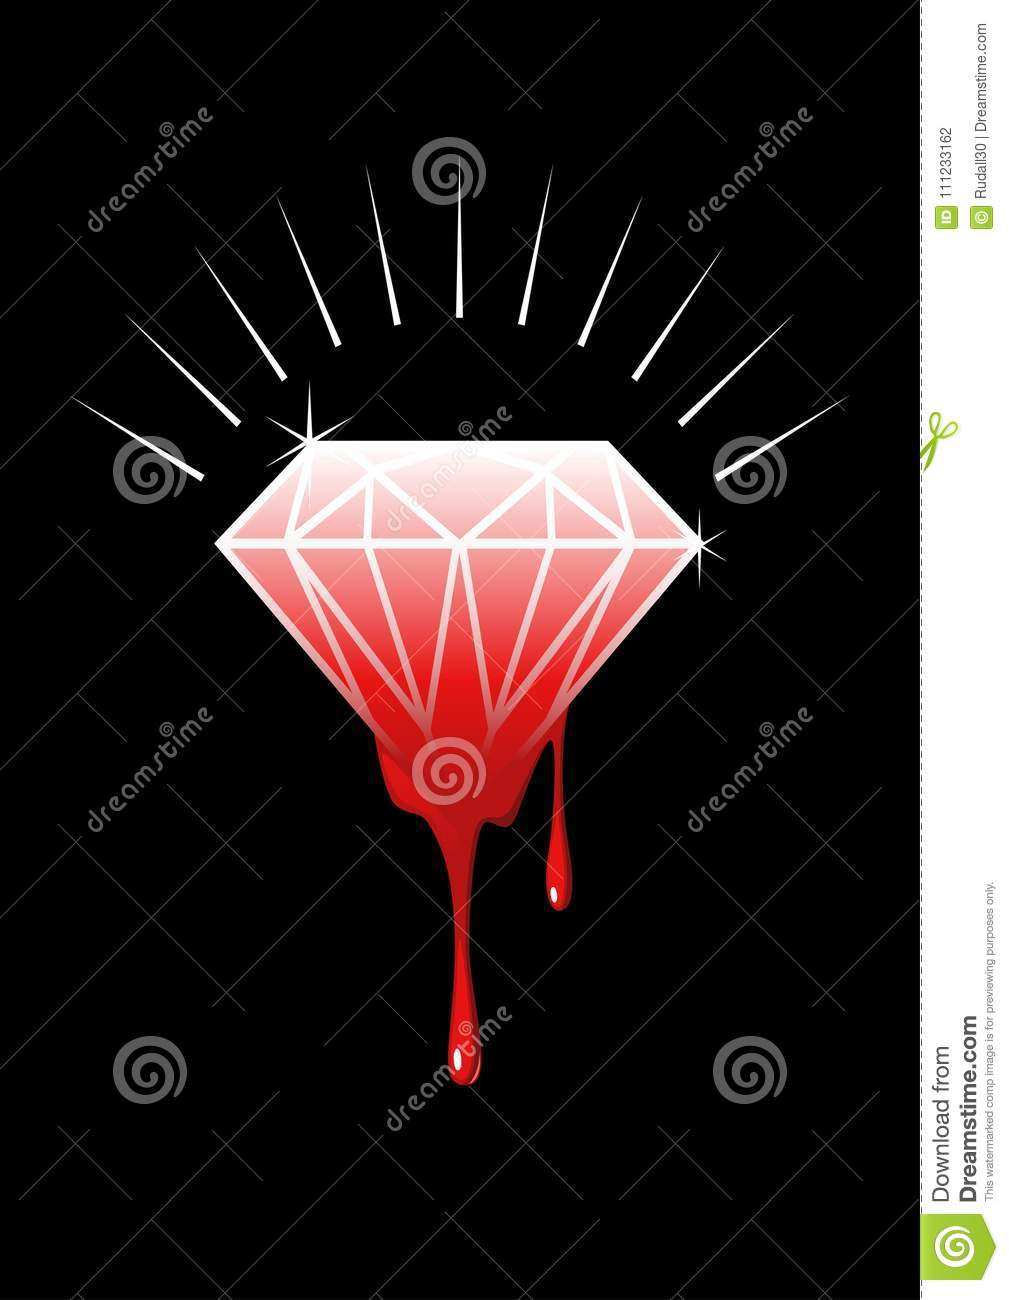 from f to slide diamonds illicit the late blood distributing download world in leone u rest ppt diamond started of conflict sierra r